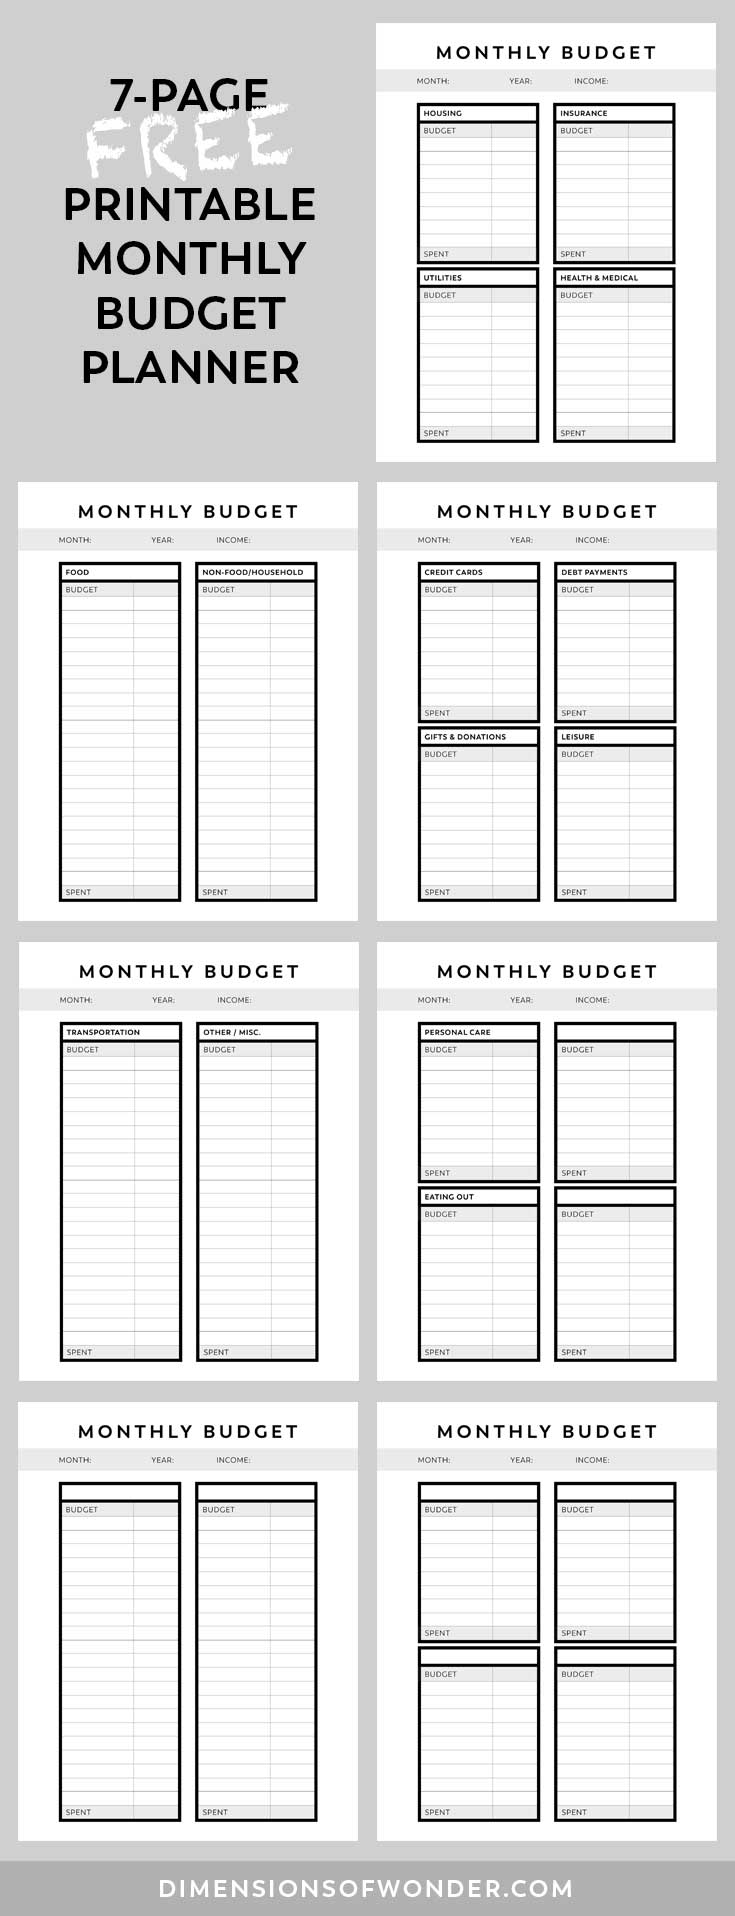 Overview of the free printable monthly budget planner's 7 pages.